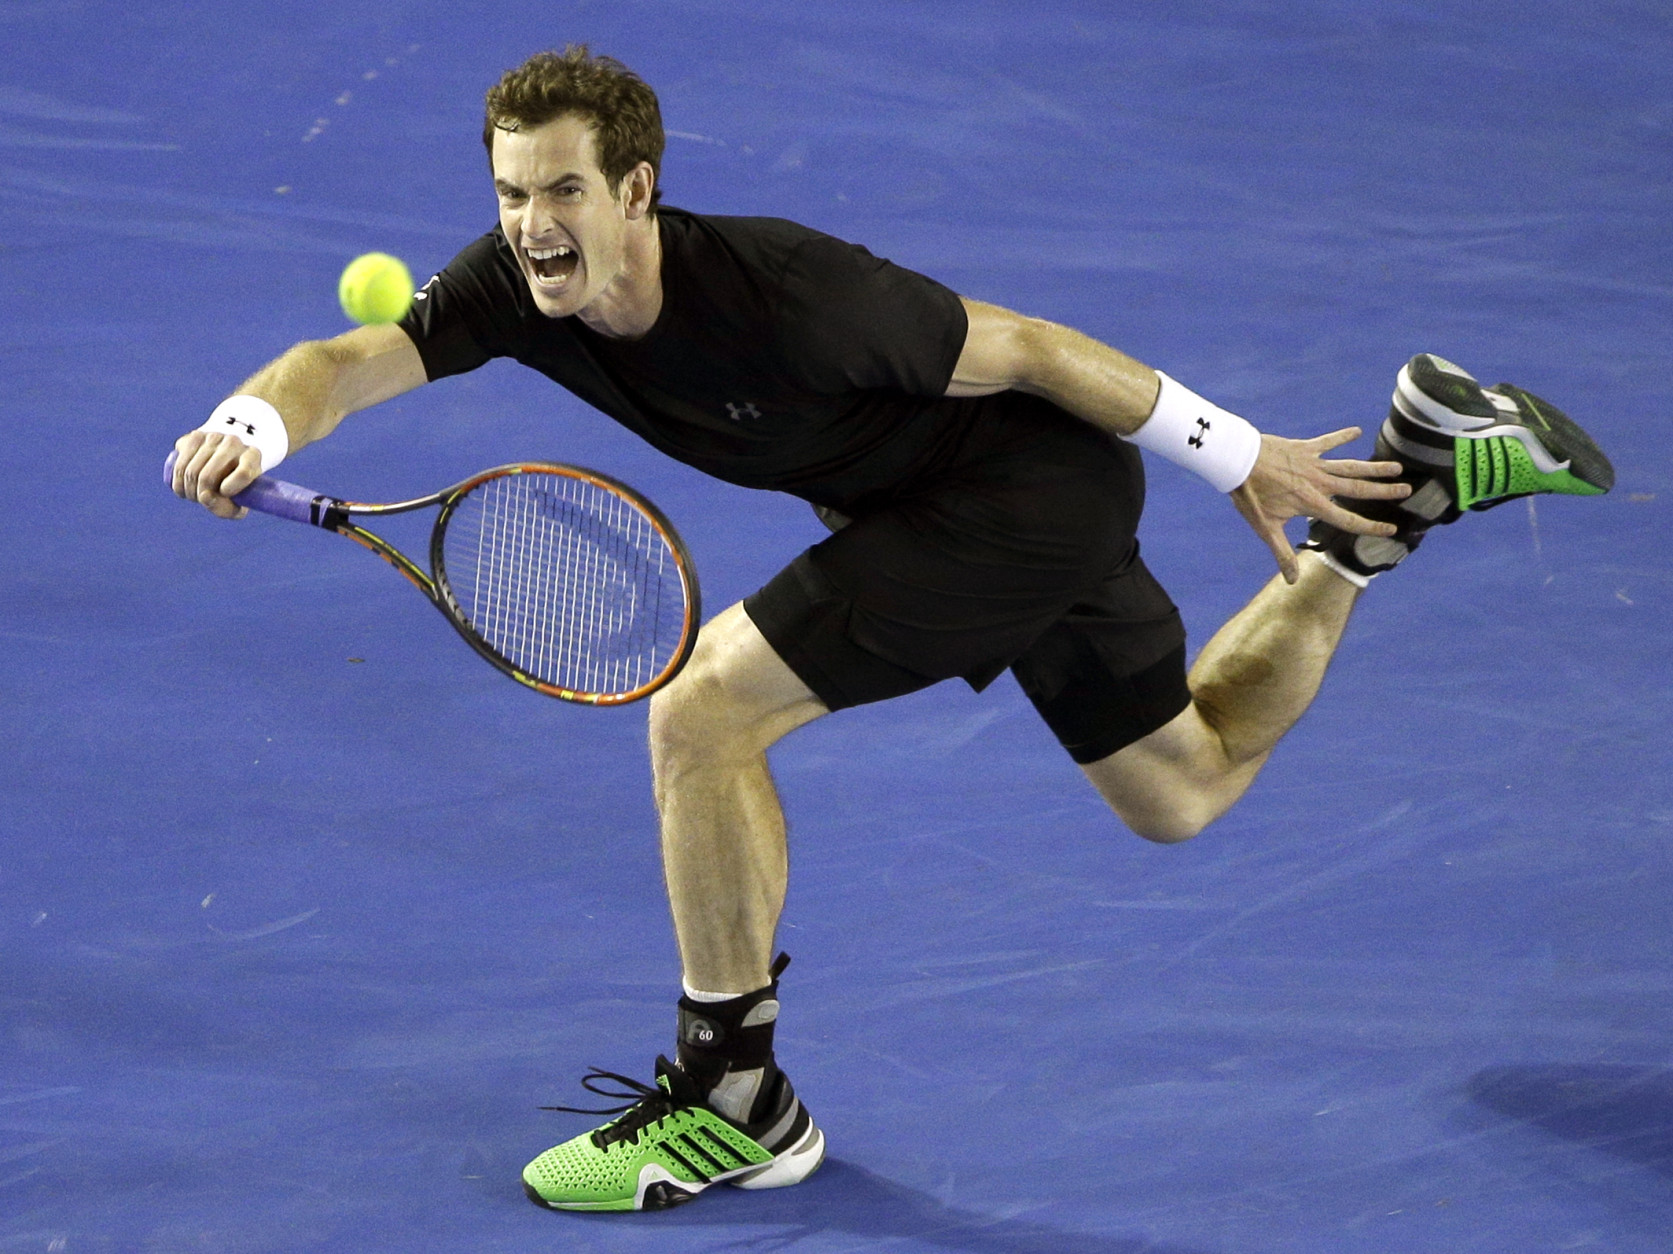 Andy Murray against serve-volley